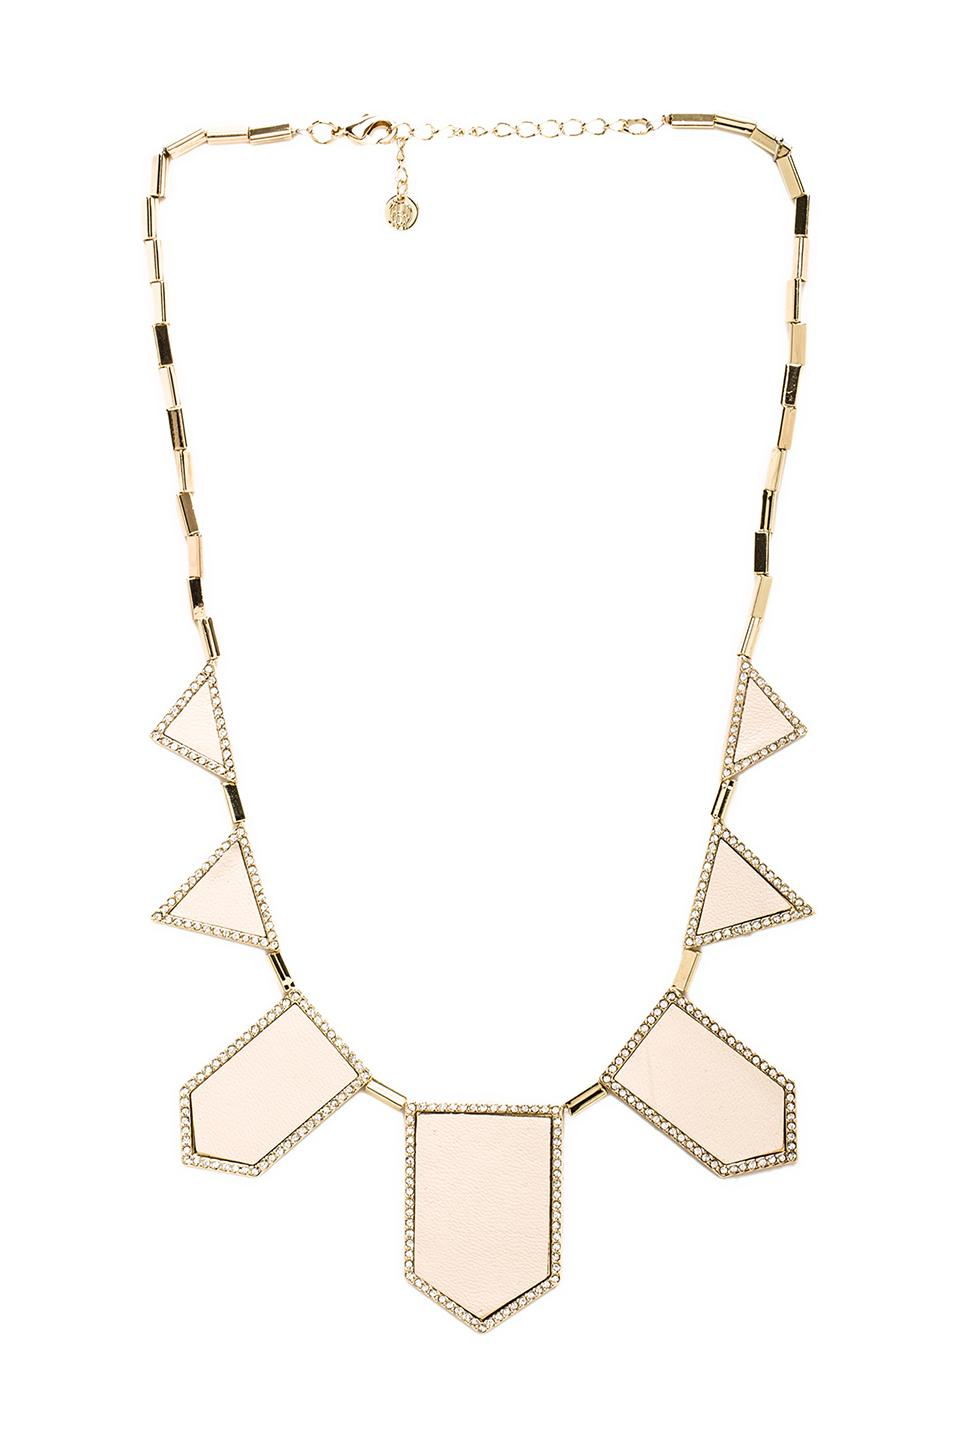 House of Harlow 1960 House of Harlow Pave Five Station Necklace in Gold Tone Cream